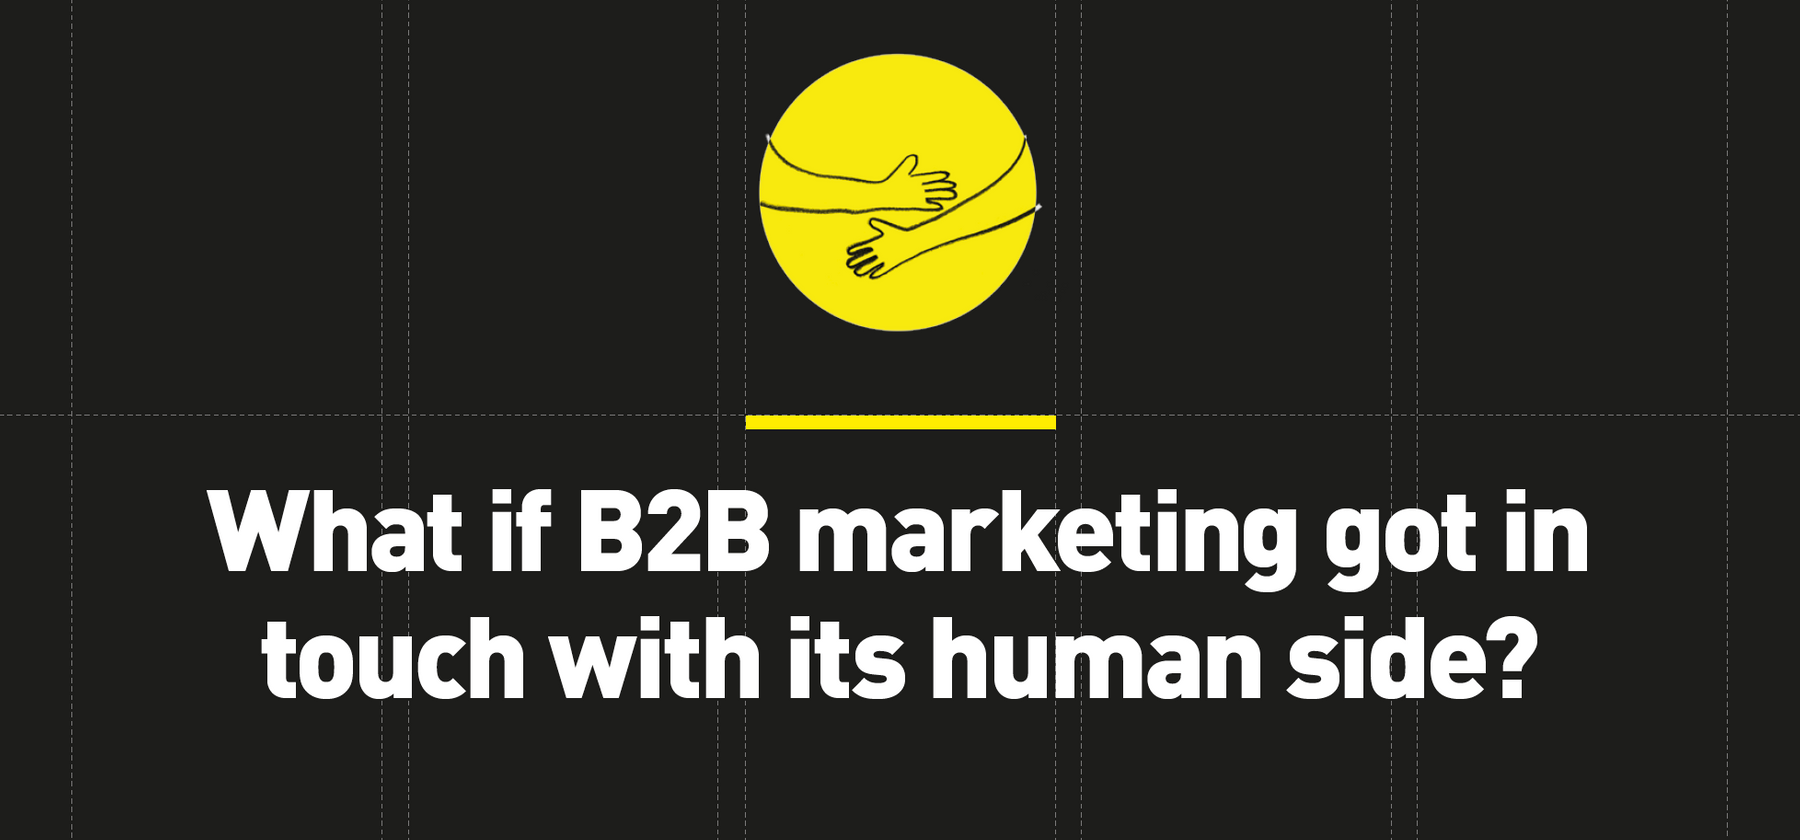 What if B2B marketing got in touch with its human side?